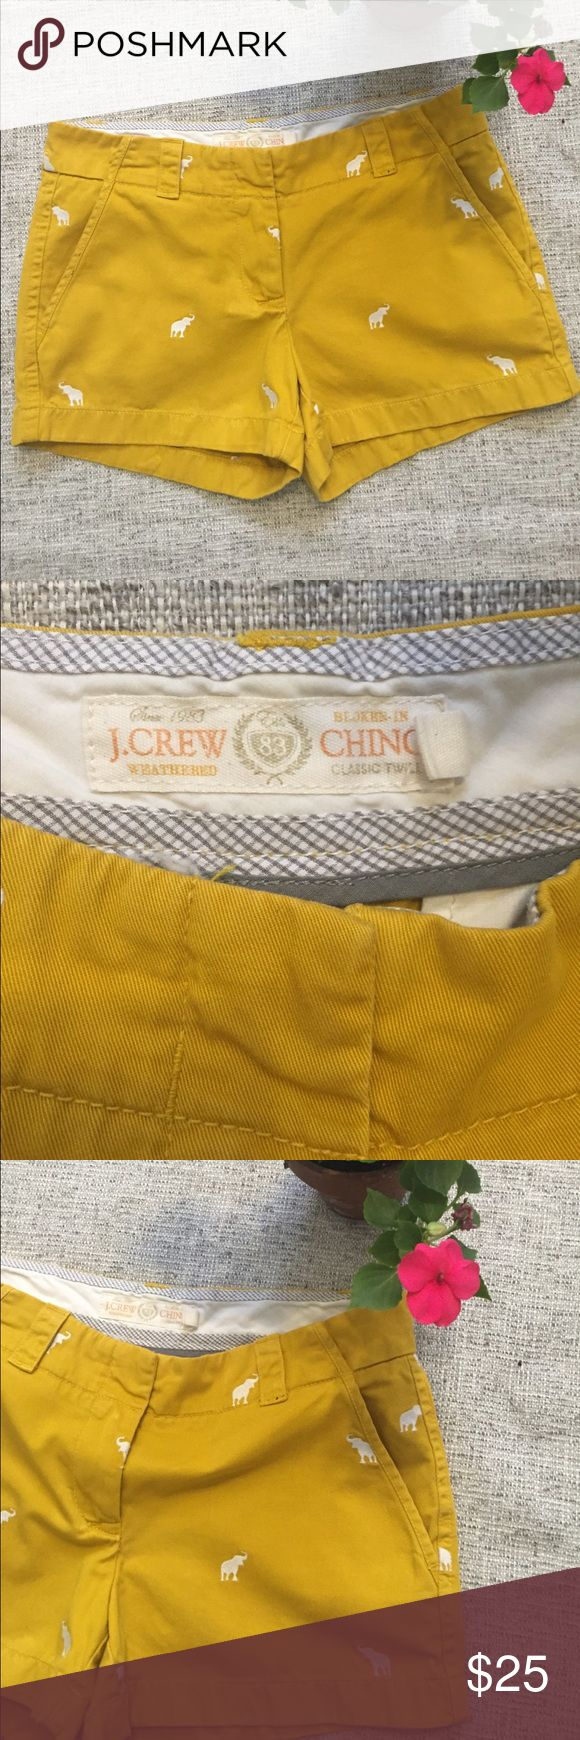 J. Crew chino shorts with Elephants My favorite shorts(that no longer fit me😳) purchased in SoHo on a mega J Crew shopping trip. I've only worn these a few times the are in very good condition. Broken-in Chino weathered, classic twill in a goldenrod color with embroidered elephants J. Crew Shorts